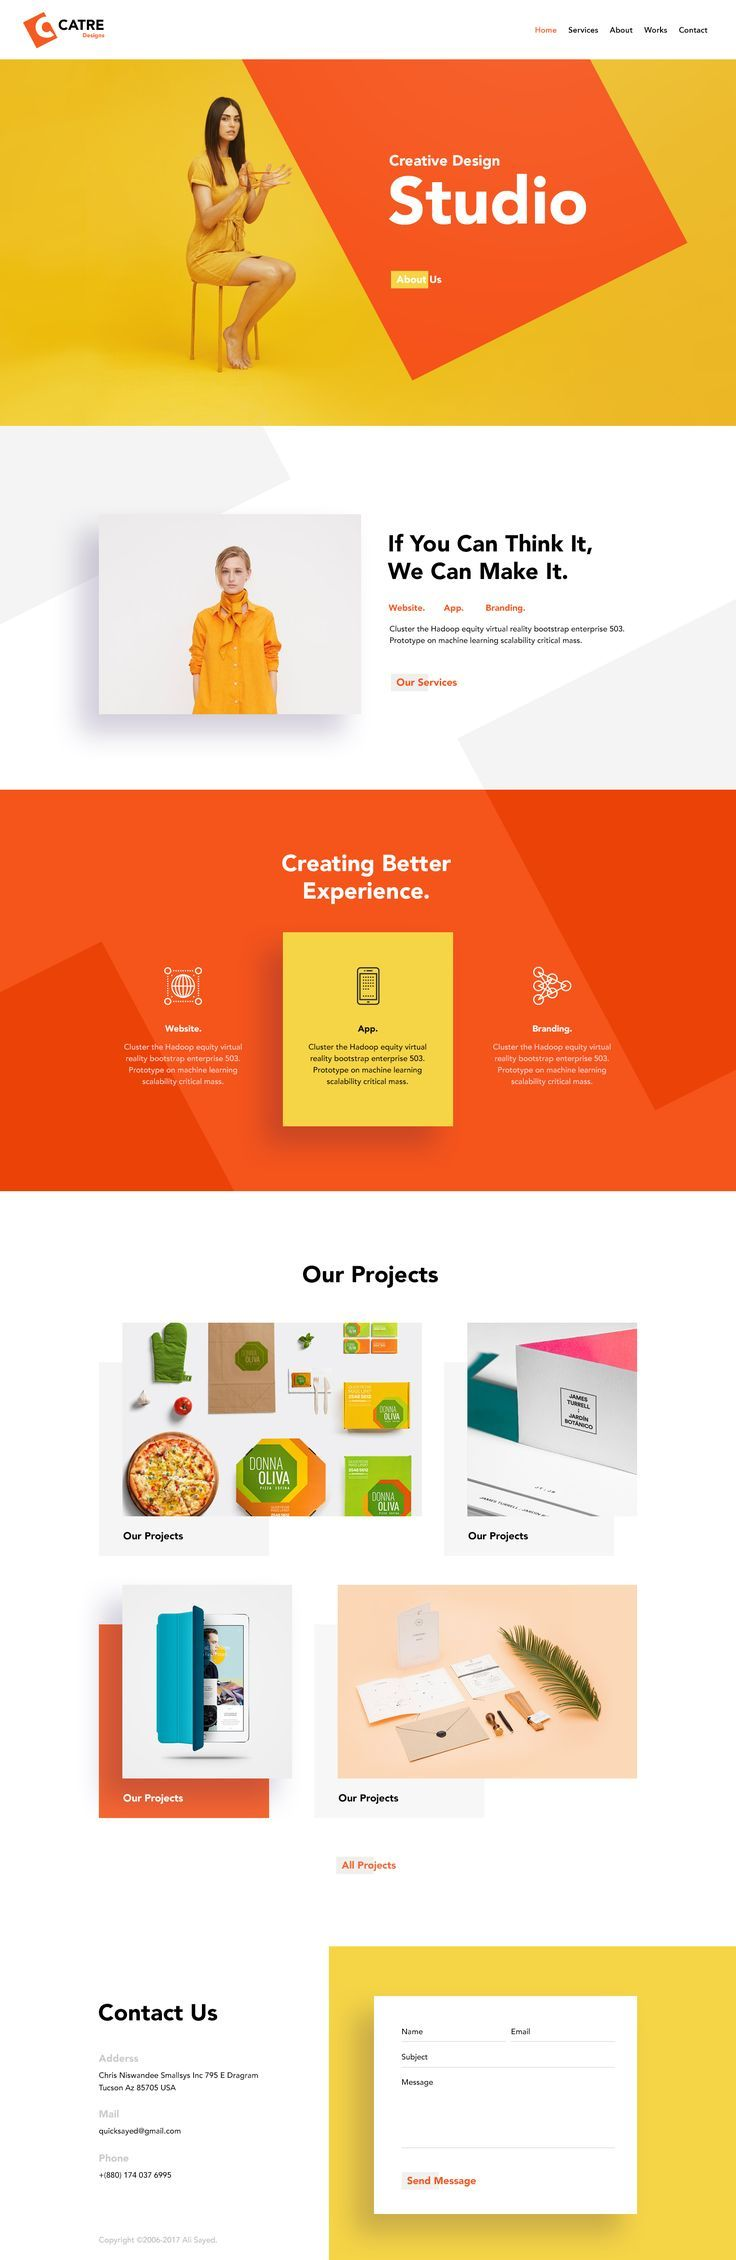 Creative Design Agency Website If You Like Ux Design Or Design Thinking Check Out Theu Agency Website Design Creative Design Agency Business Website Design